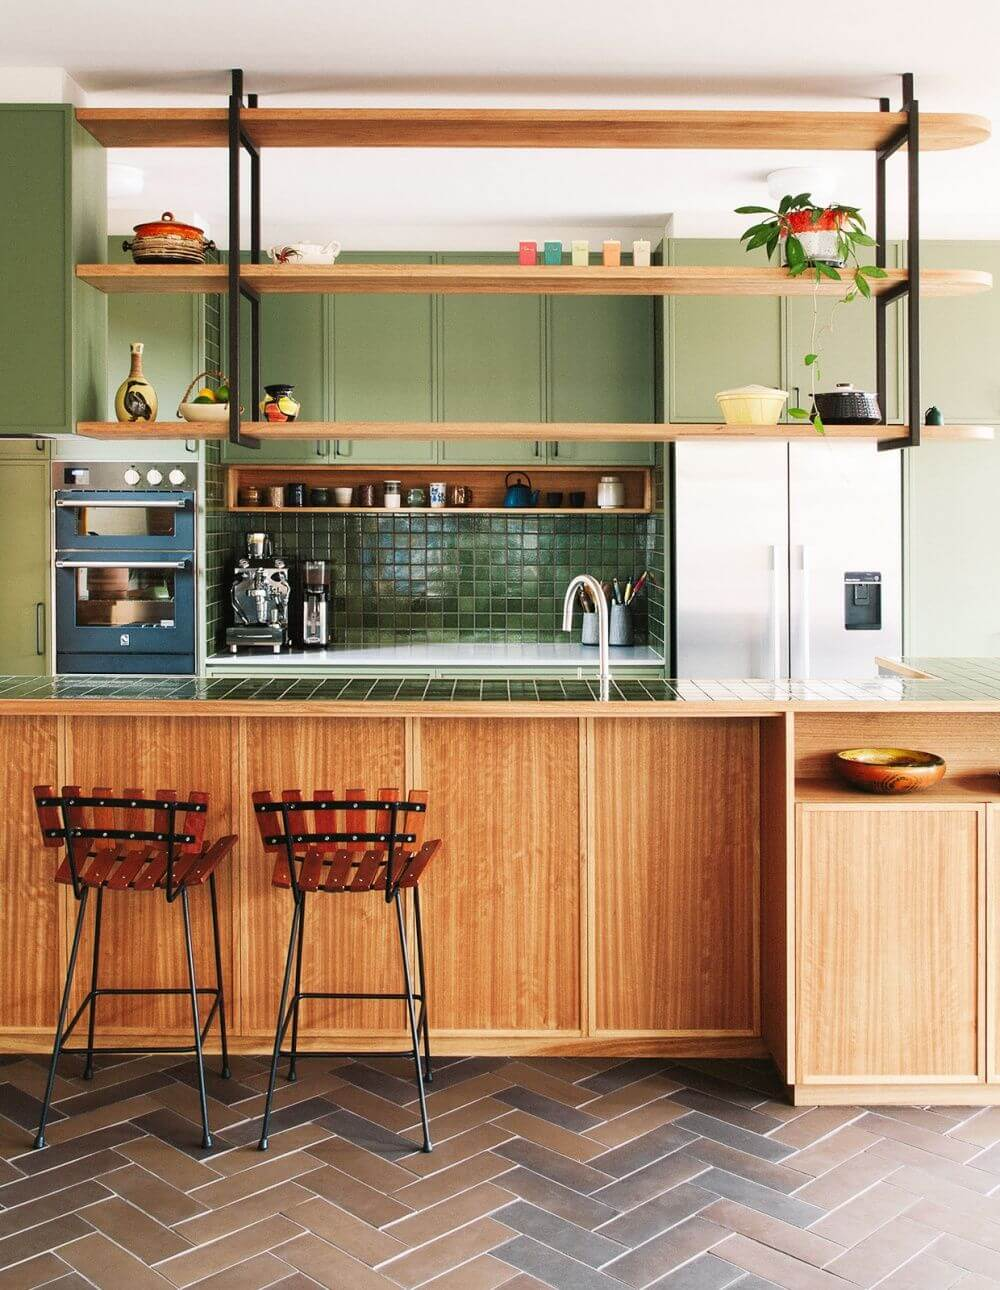 25 Mid Century Modern Kitchen Ideas To Beautify Your Cooking Area - 0E5616Efa21273F9Ff1340C338352Eea